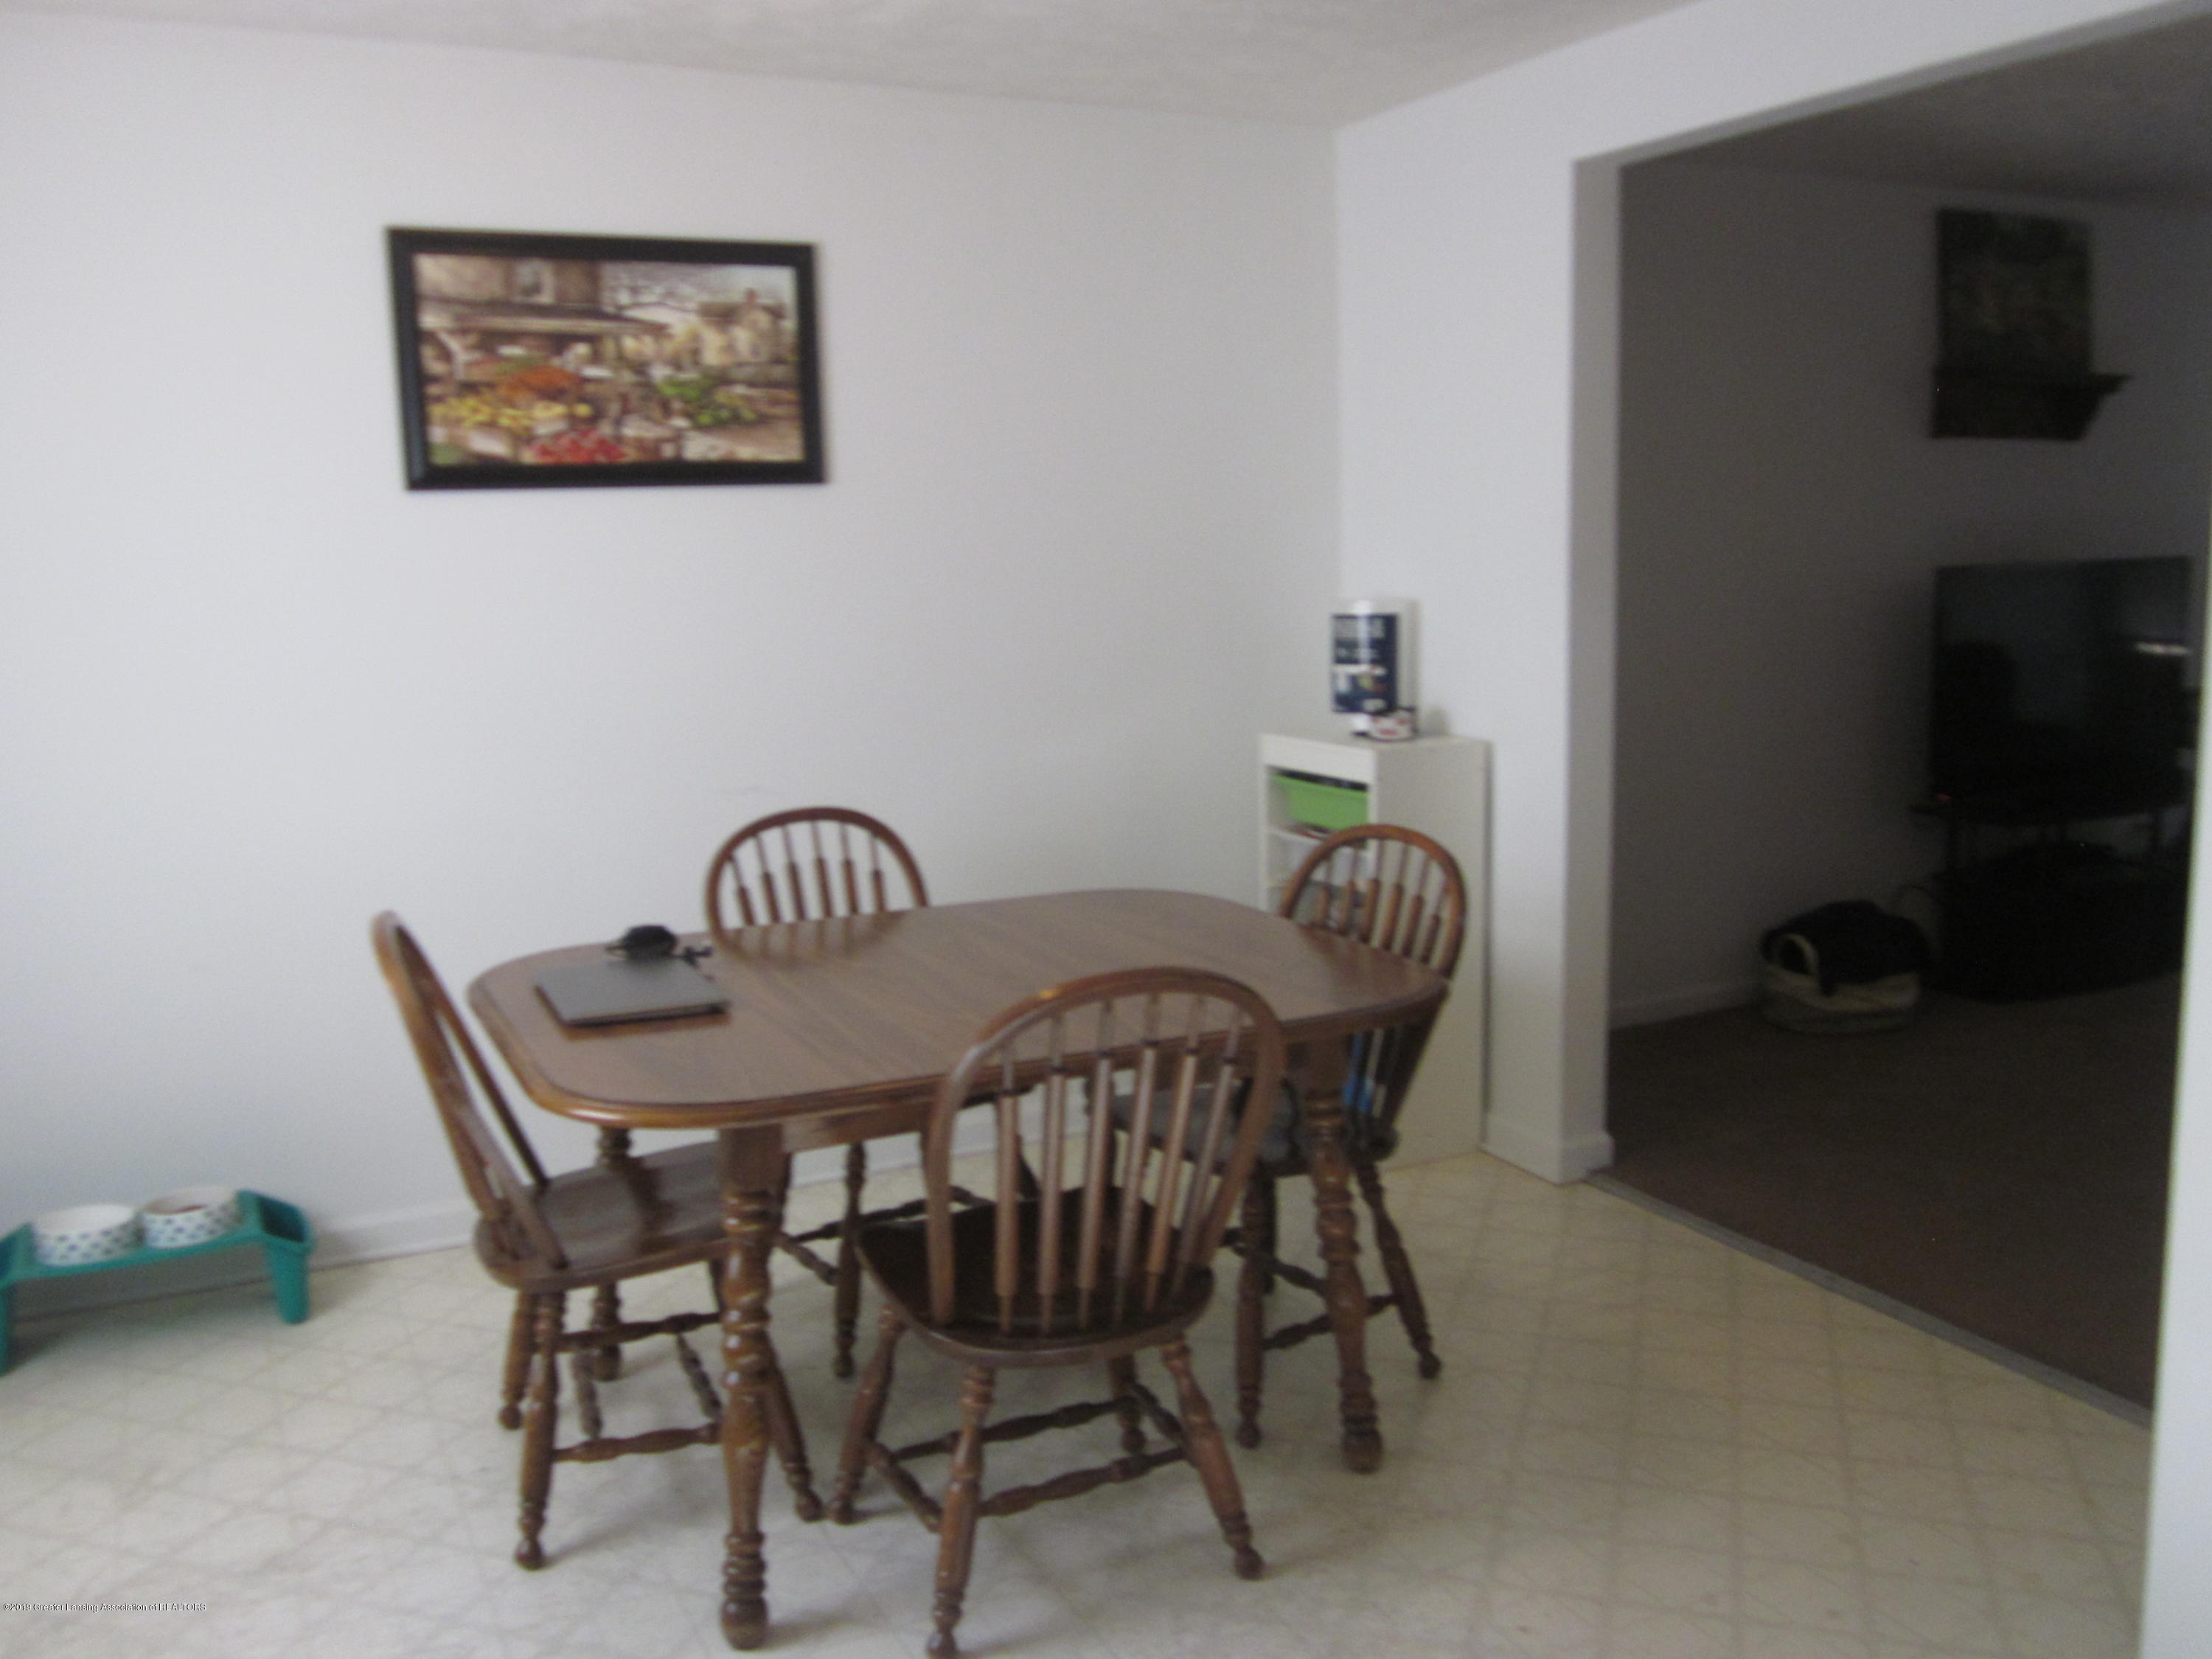 535 S Magnolia Ave - Dining room - 6